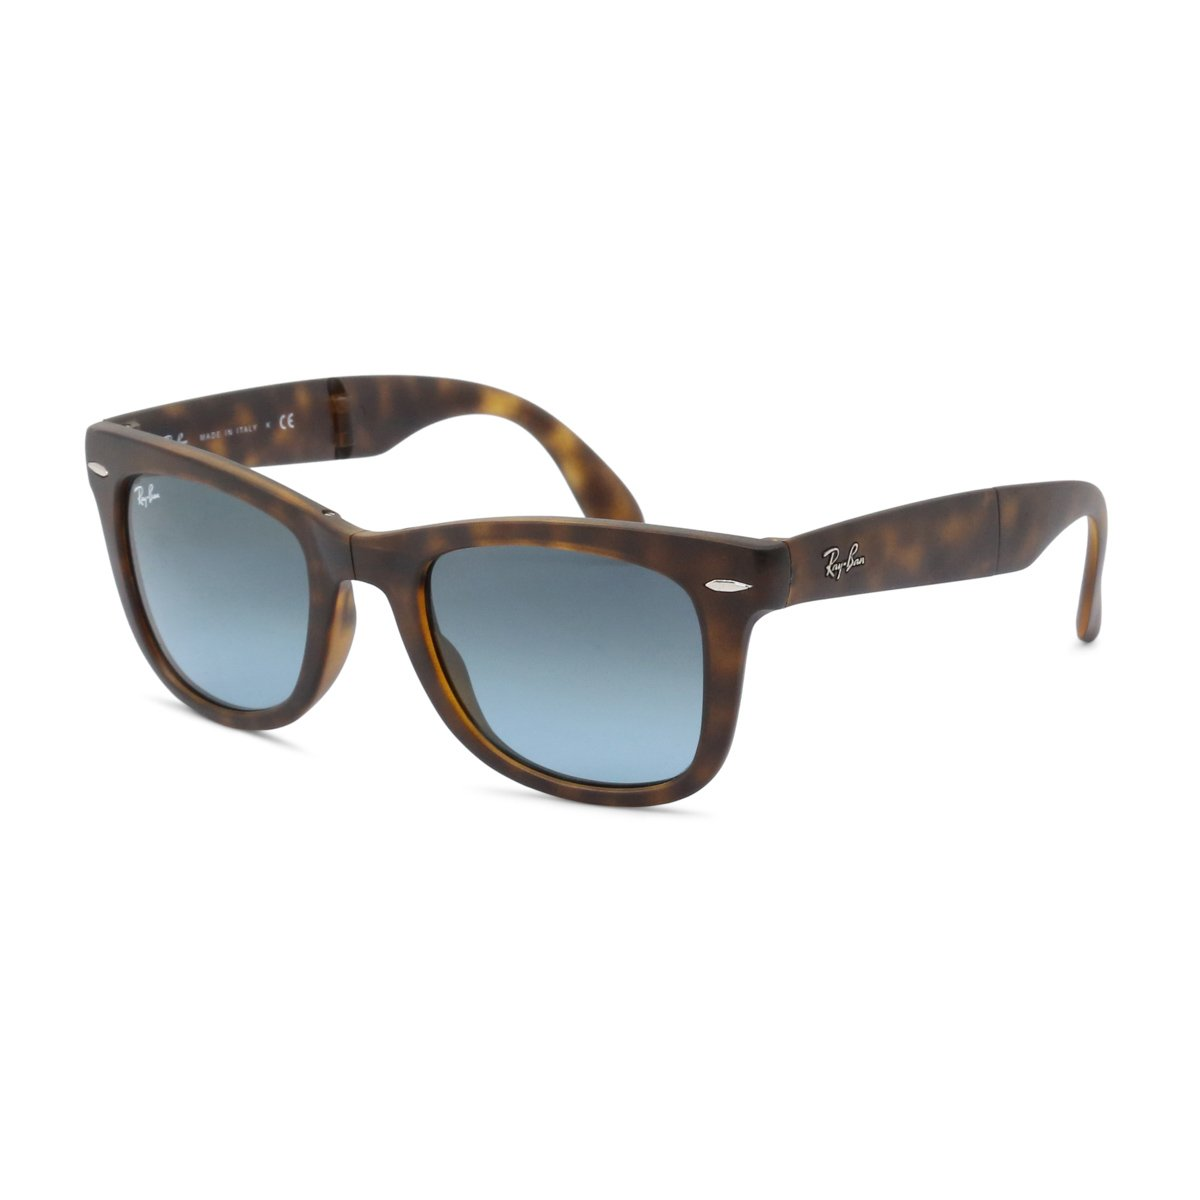 Ray-Ban Unisex Sunglasses Various Colours 0RB4105 - brown-4 NOSIZE